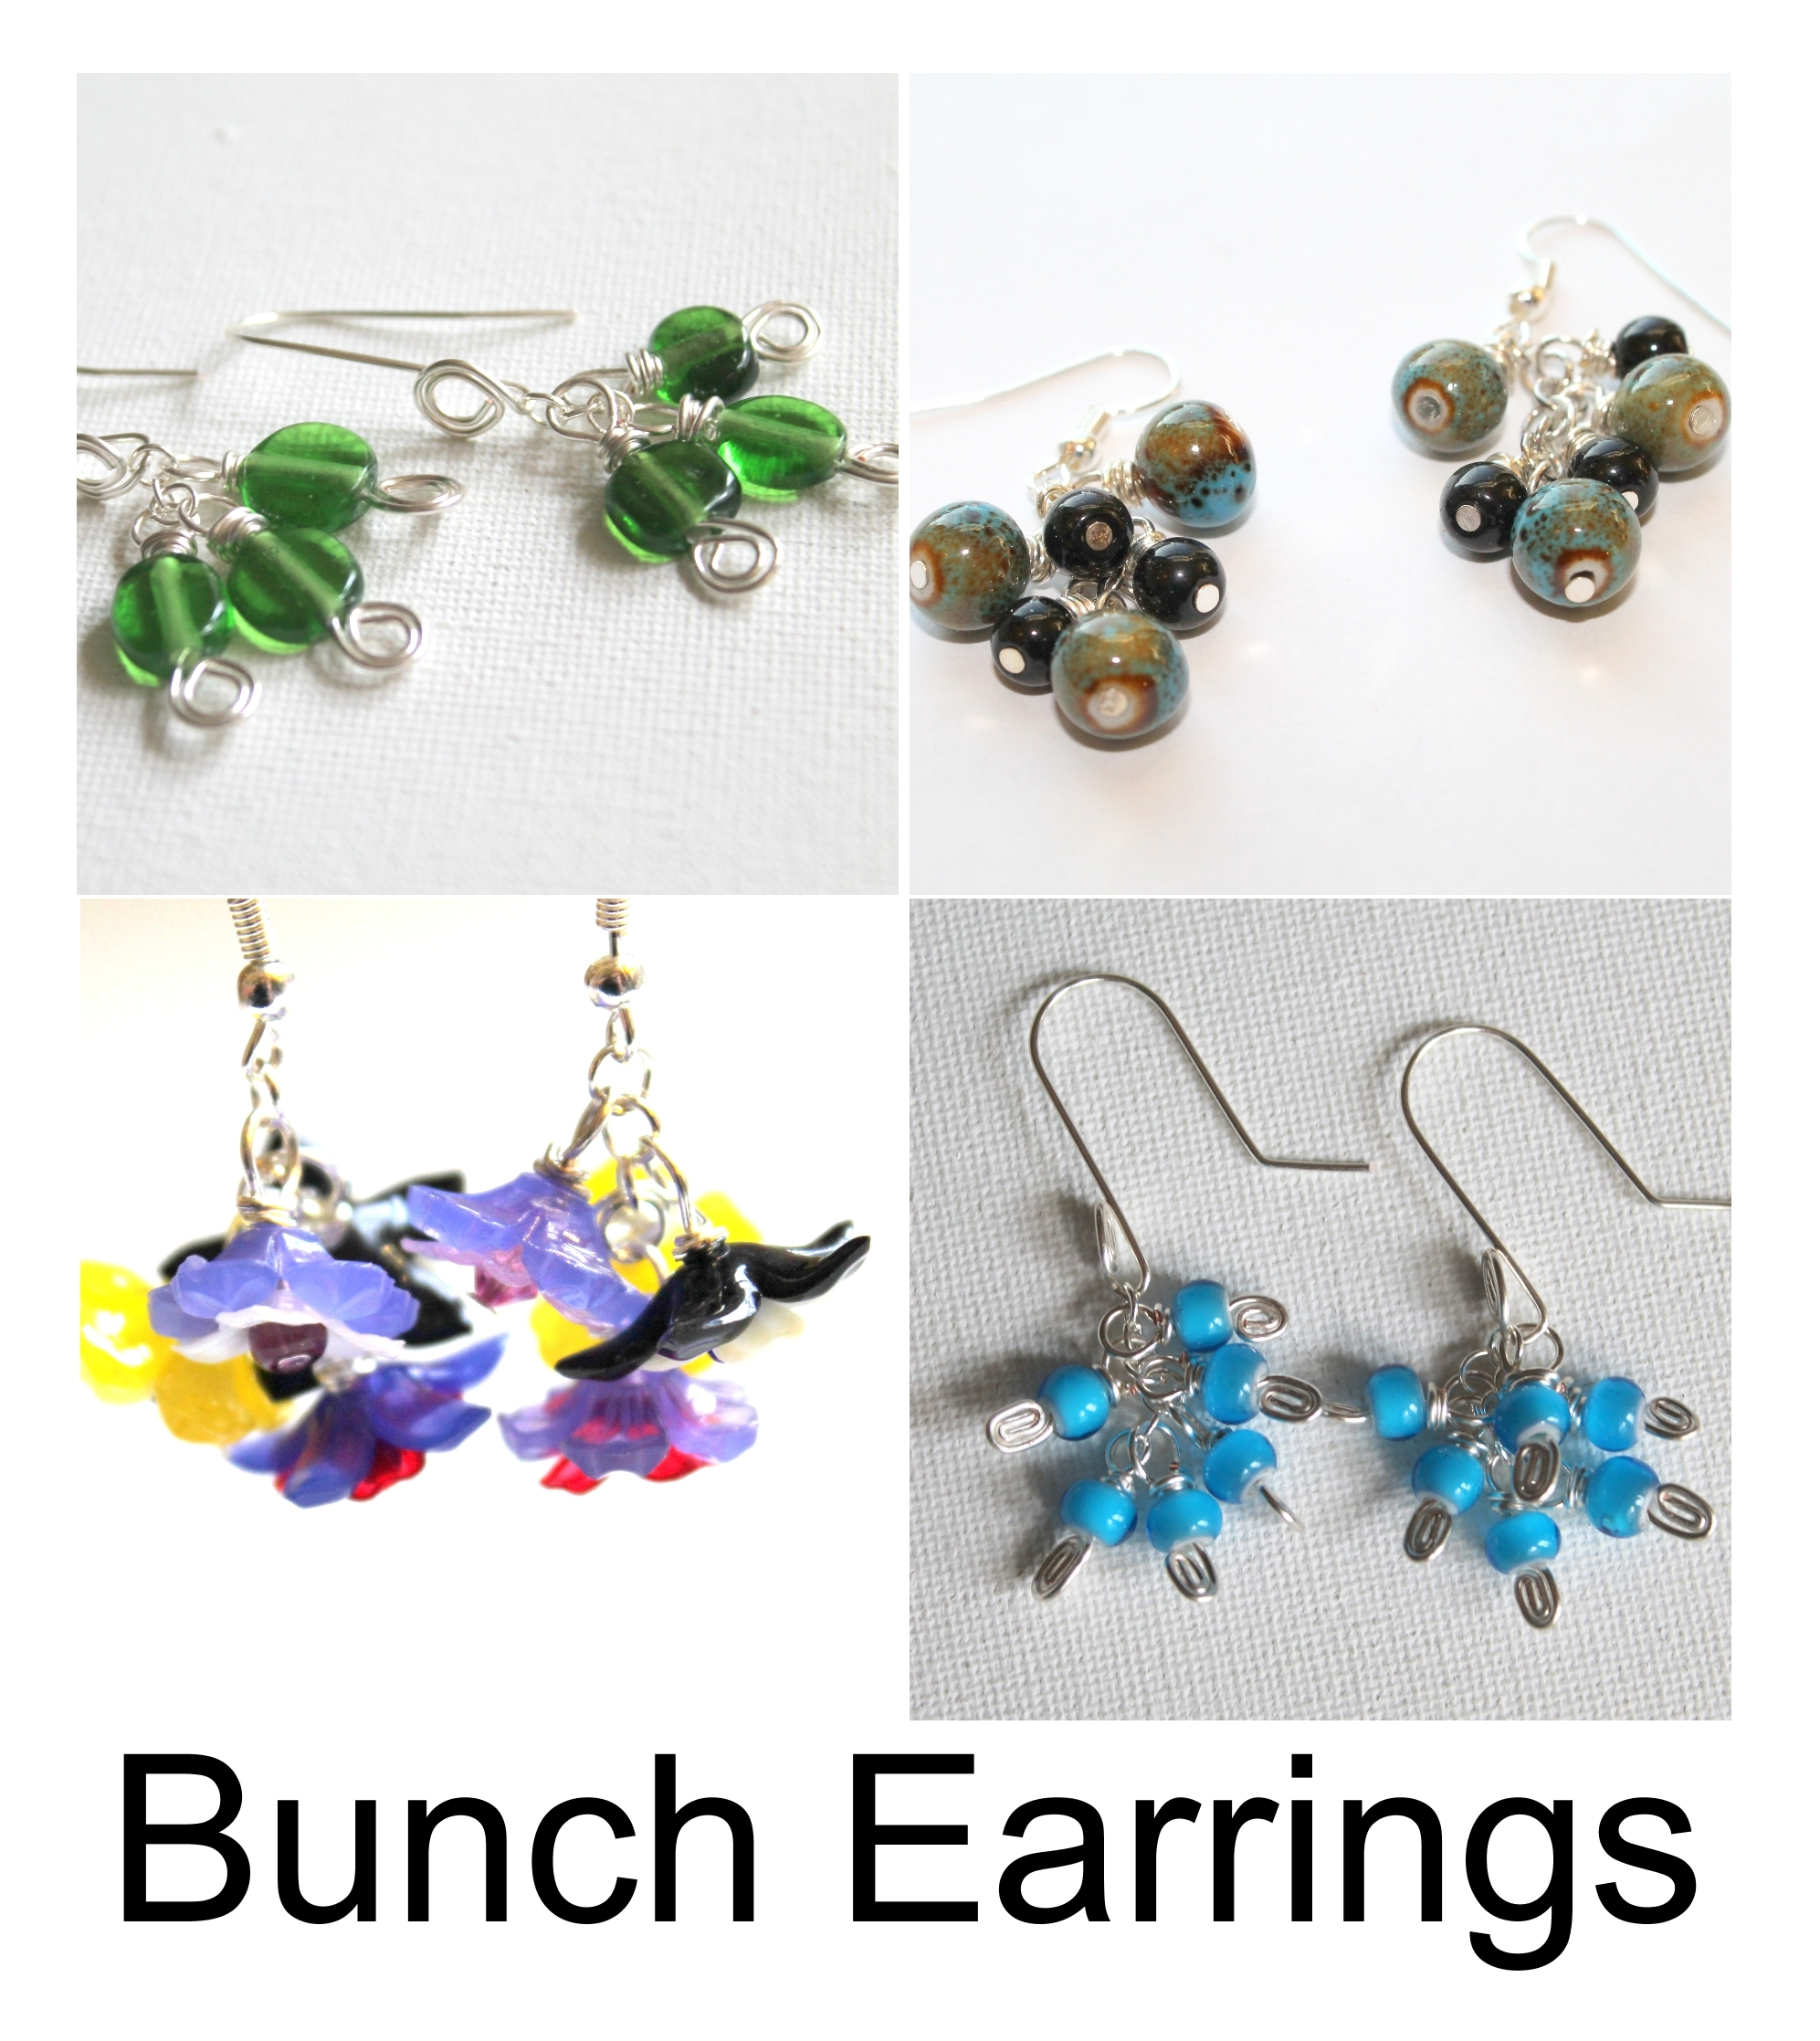 Bunch Earrings Pattern